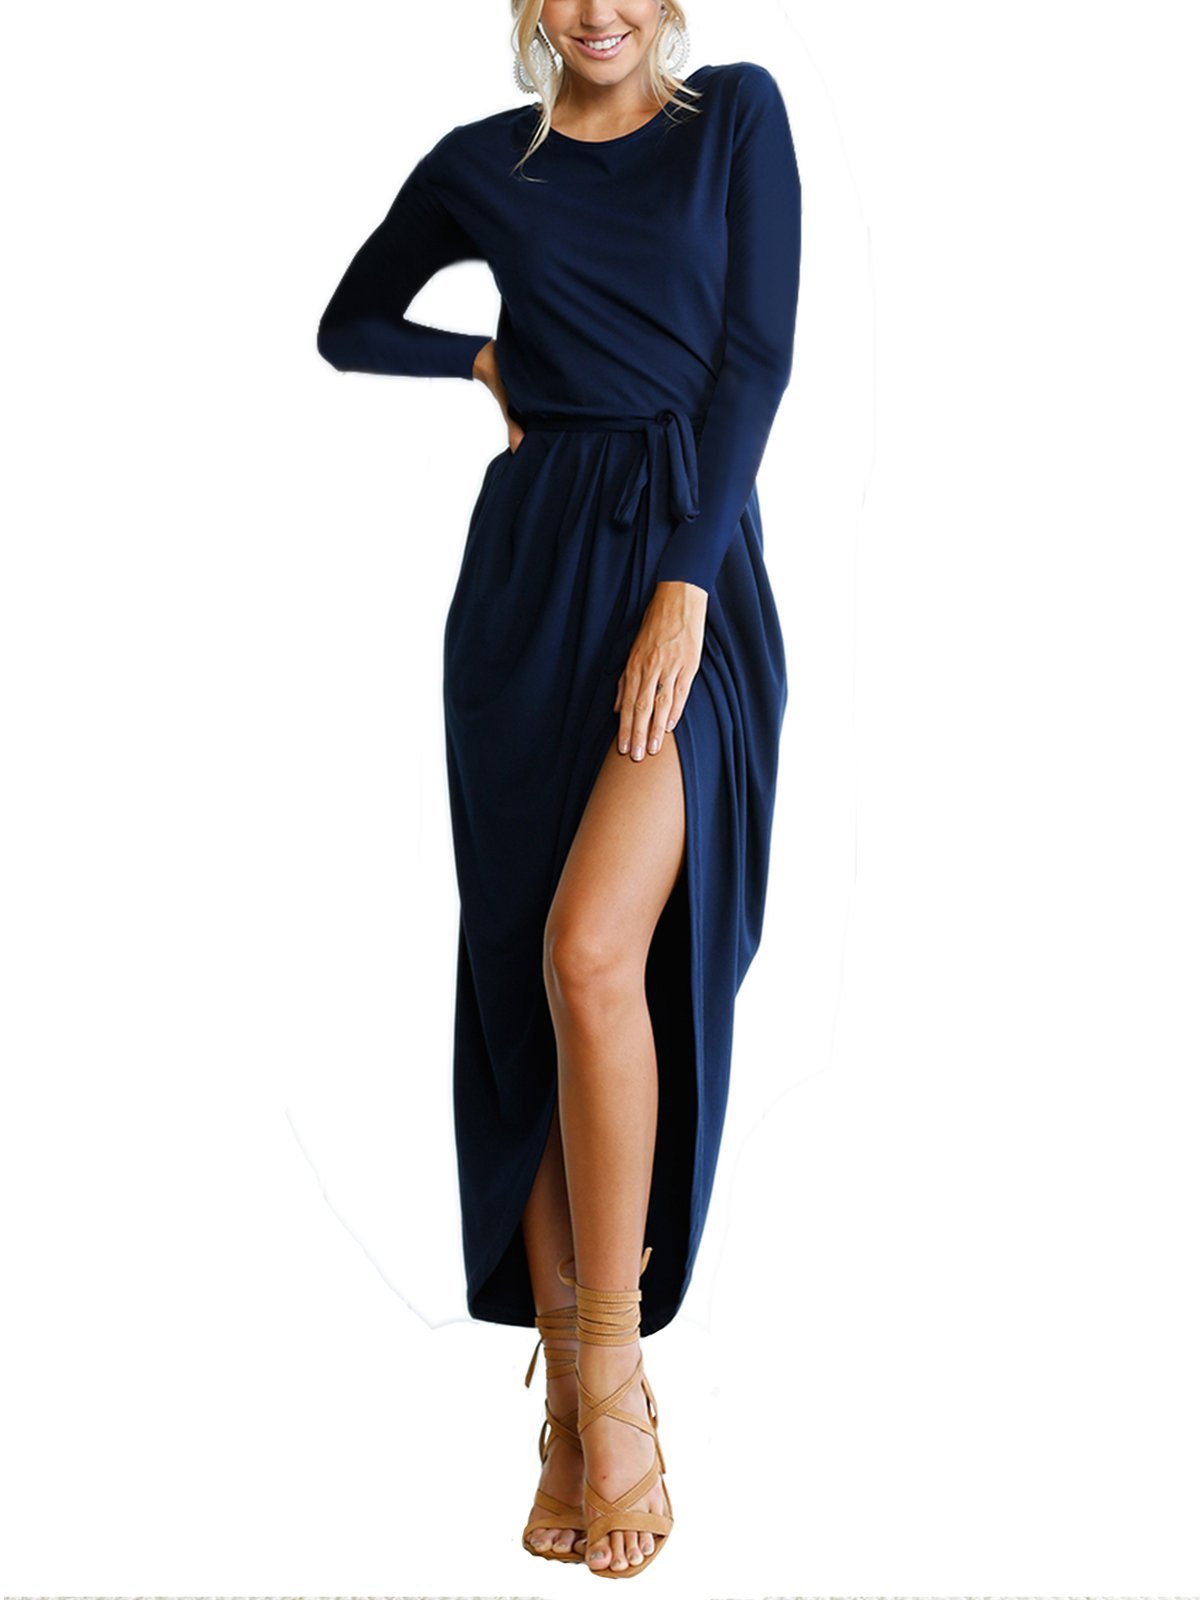 VYNCS Women's Casual Long Sleeve Wrap Front Slit Solid High Waist Cocktail Long Maxi Dress with Belt (Navy Blue, X-Large)